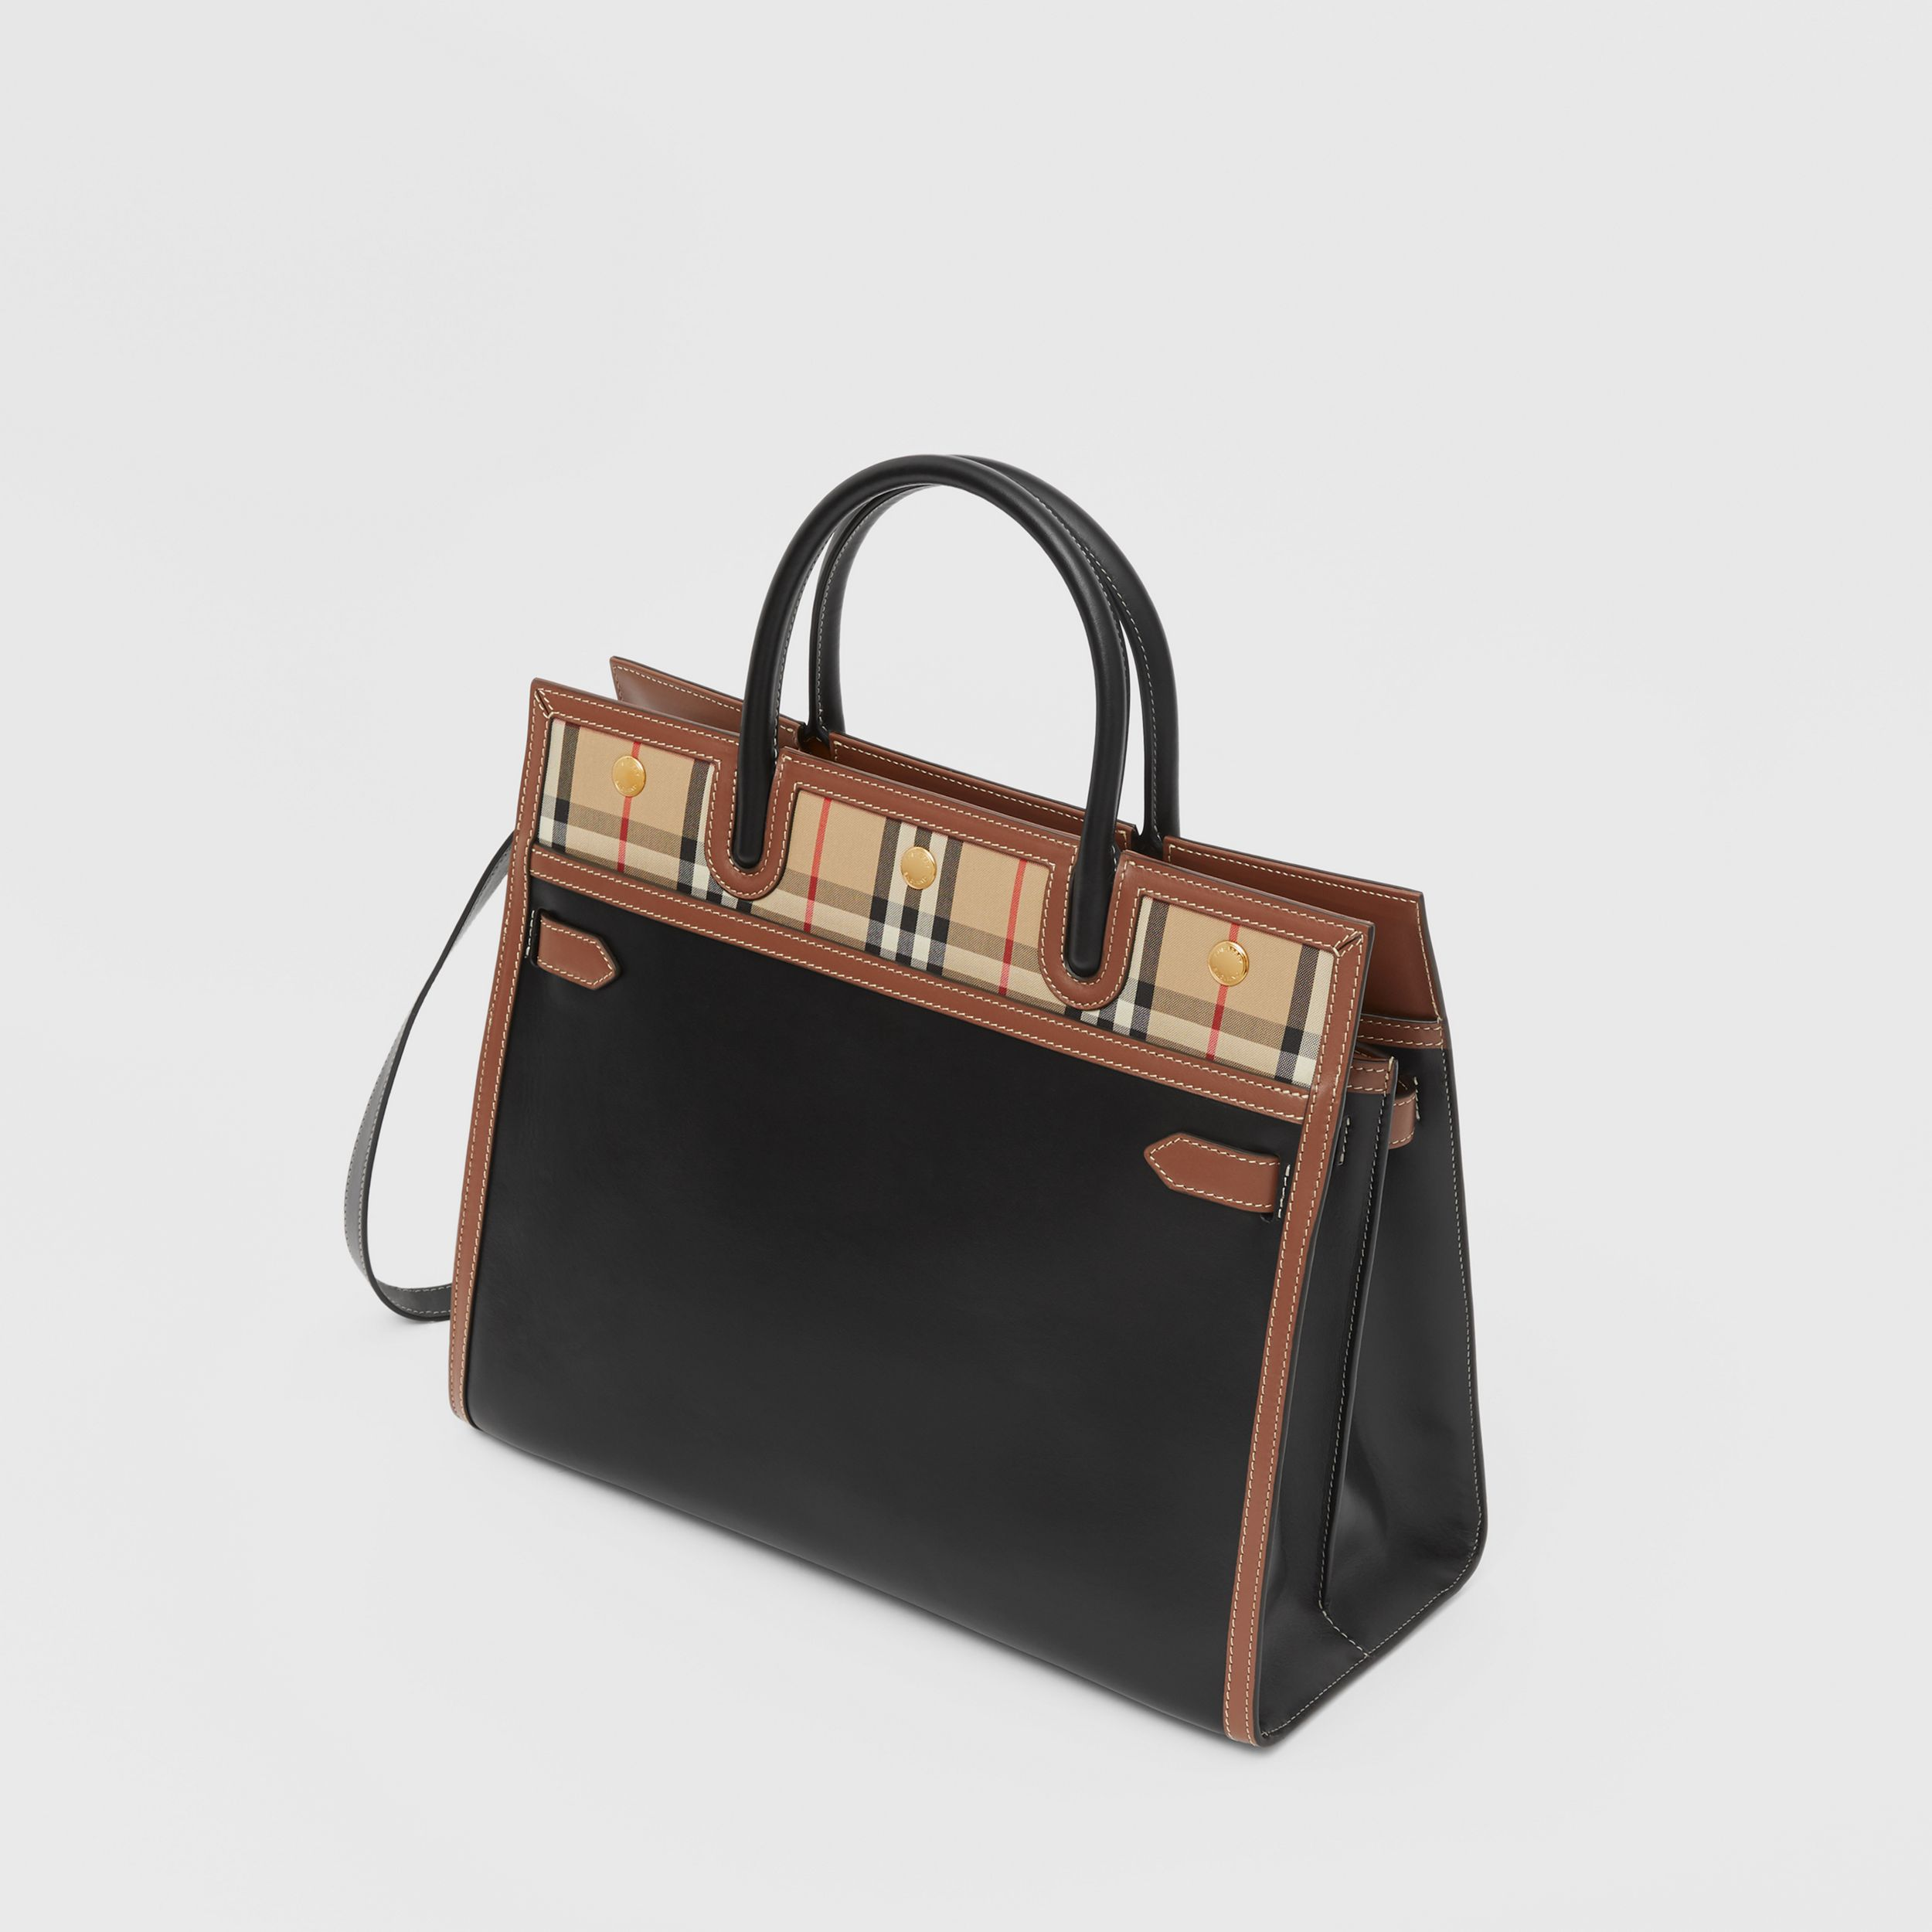 Medium Leather and Vintage Check Two-handle Title Bag in Black - Women | Burberry - 4